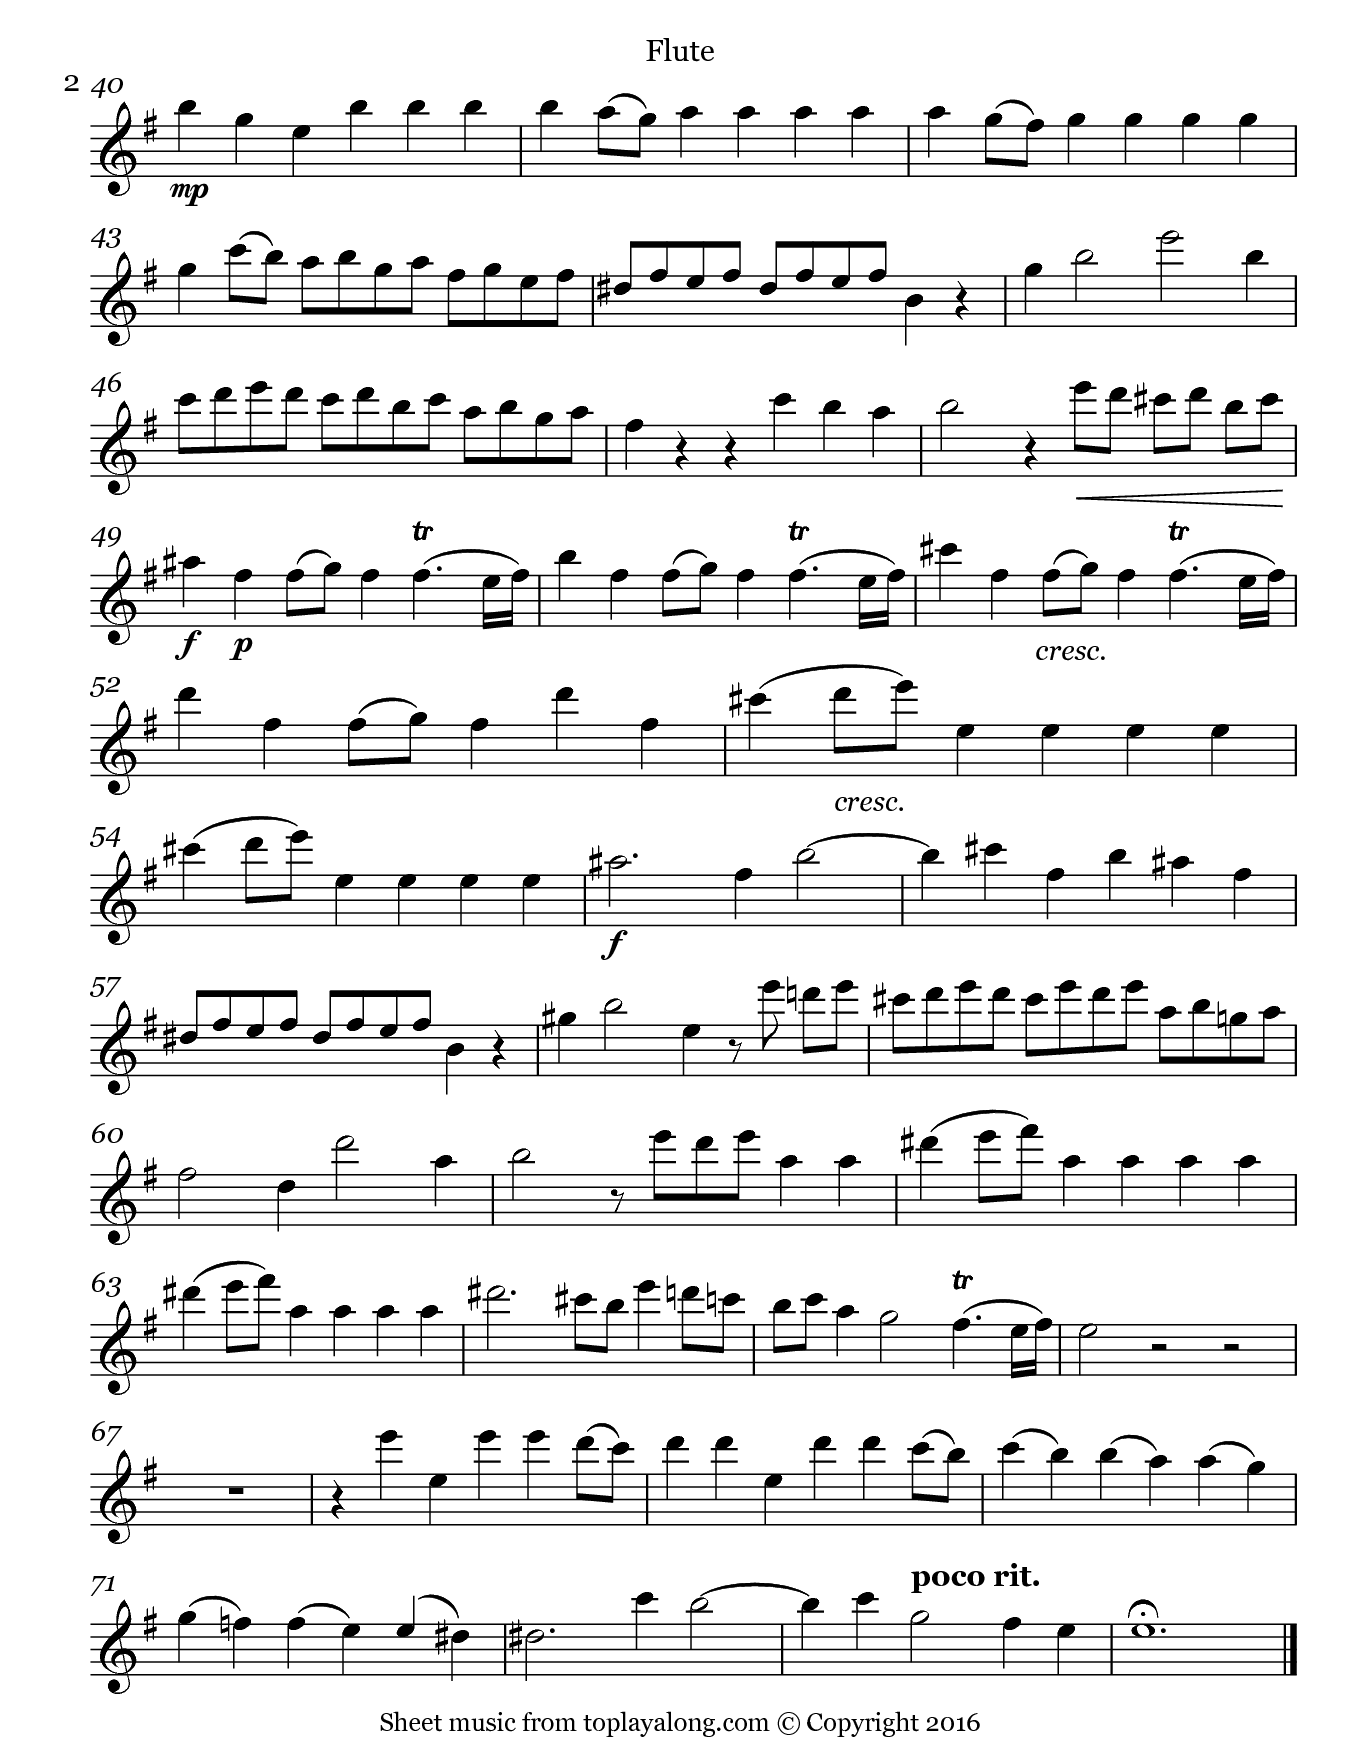 Alla Hornpipe from Water Music Suite II by Handel. Sheet music for Flute, page 2.